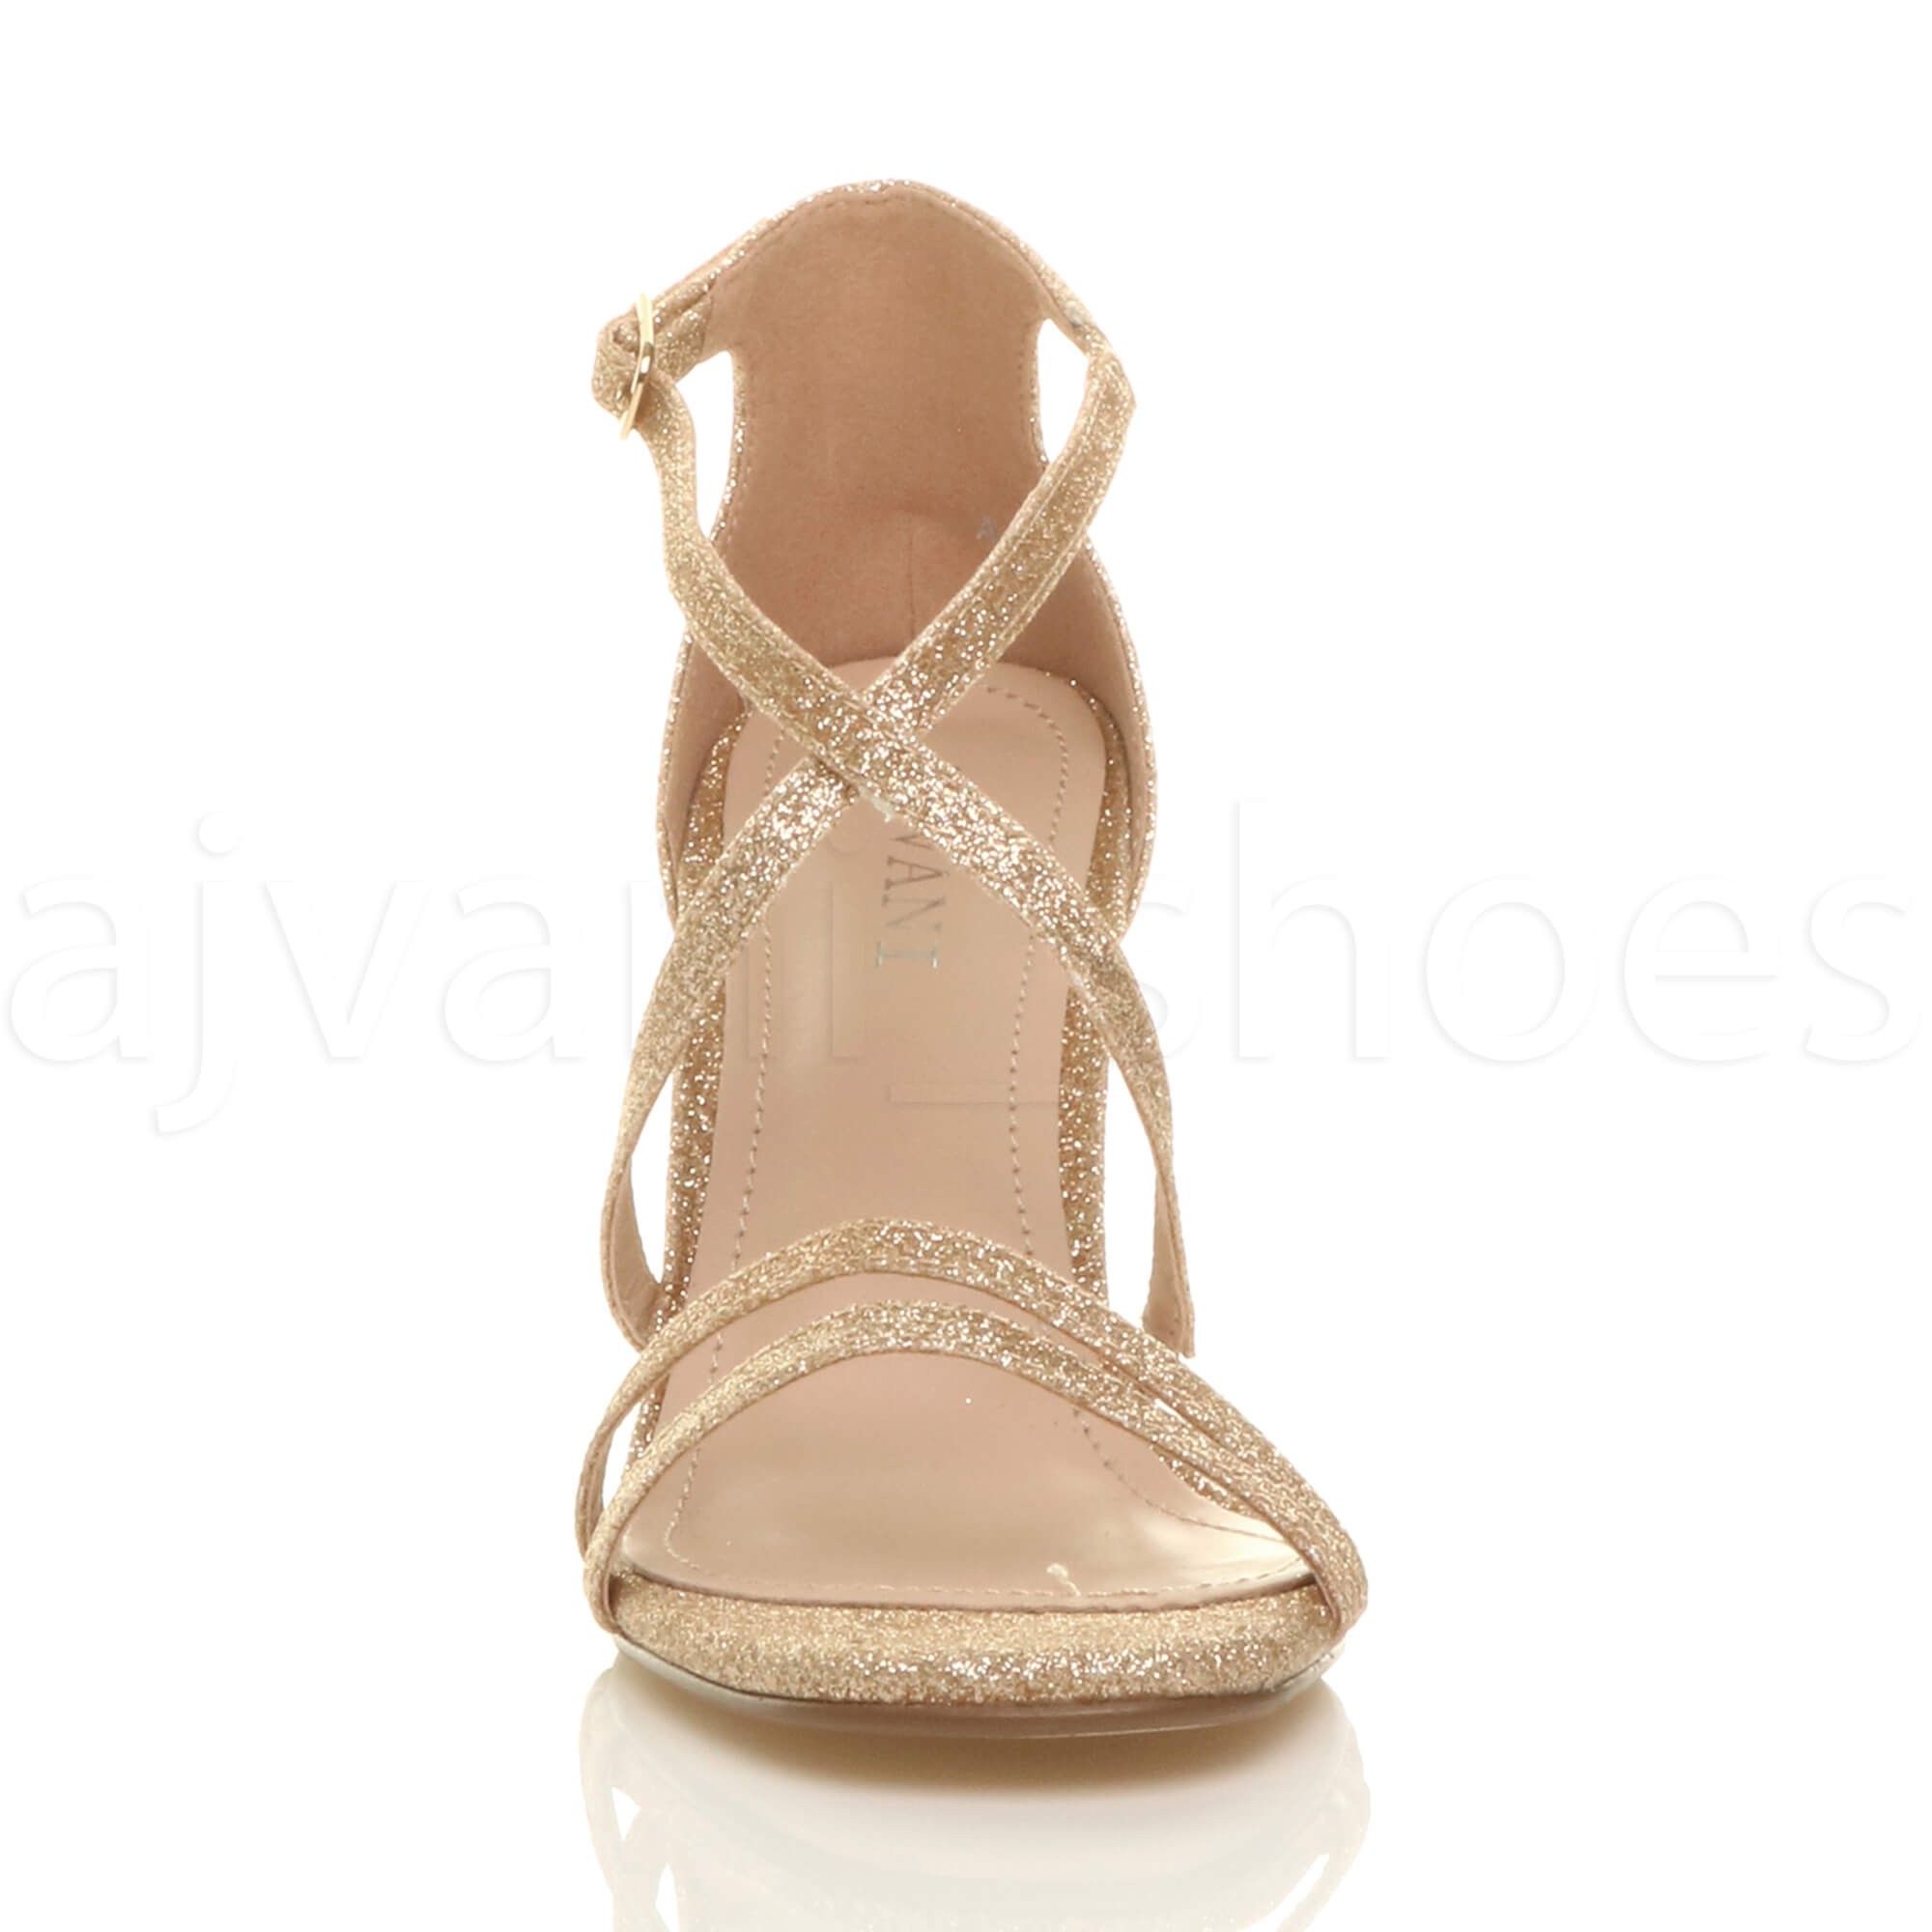 WOMENS-LADIES-MID-HIGH-HEEL-STRAPPY-CROSSOVER-WEDDING-PROM-SANDALS-SHOES-SIZE thumbnail 55